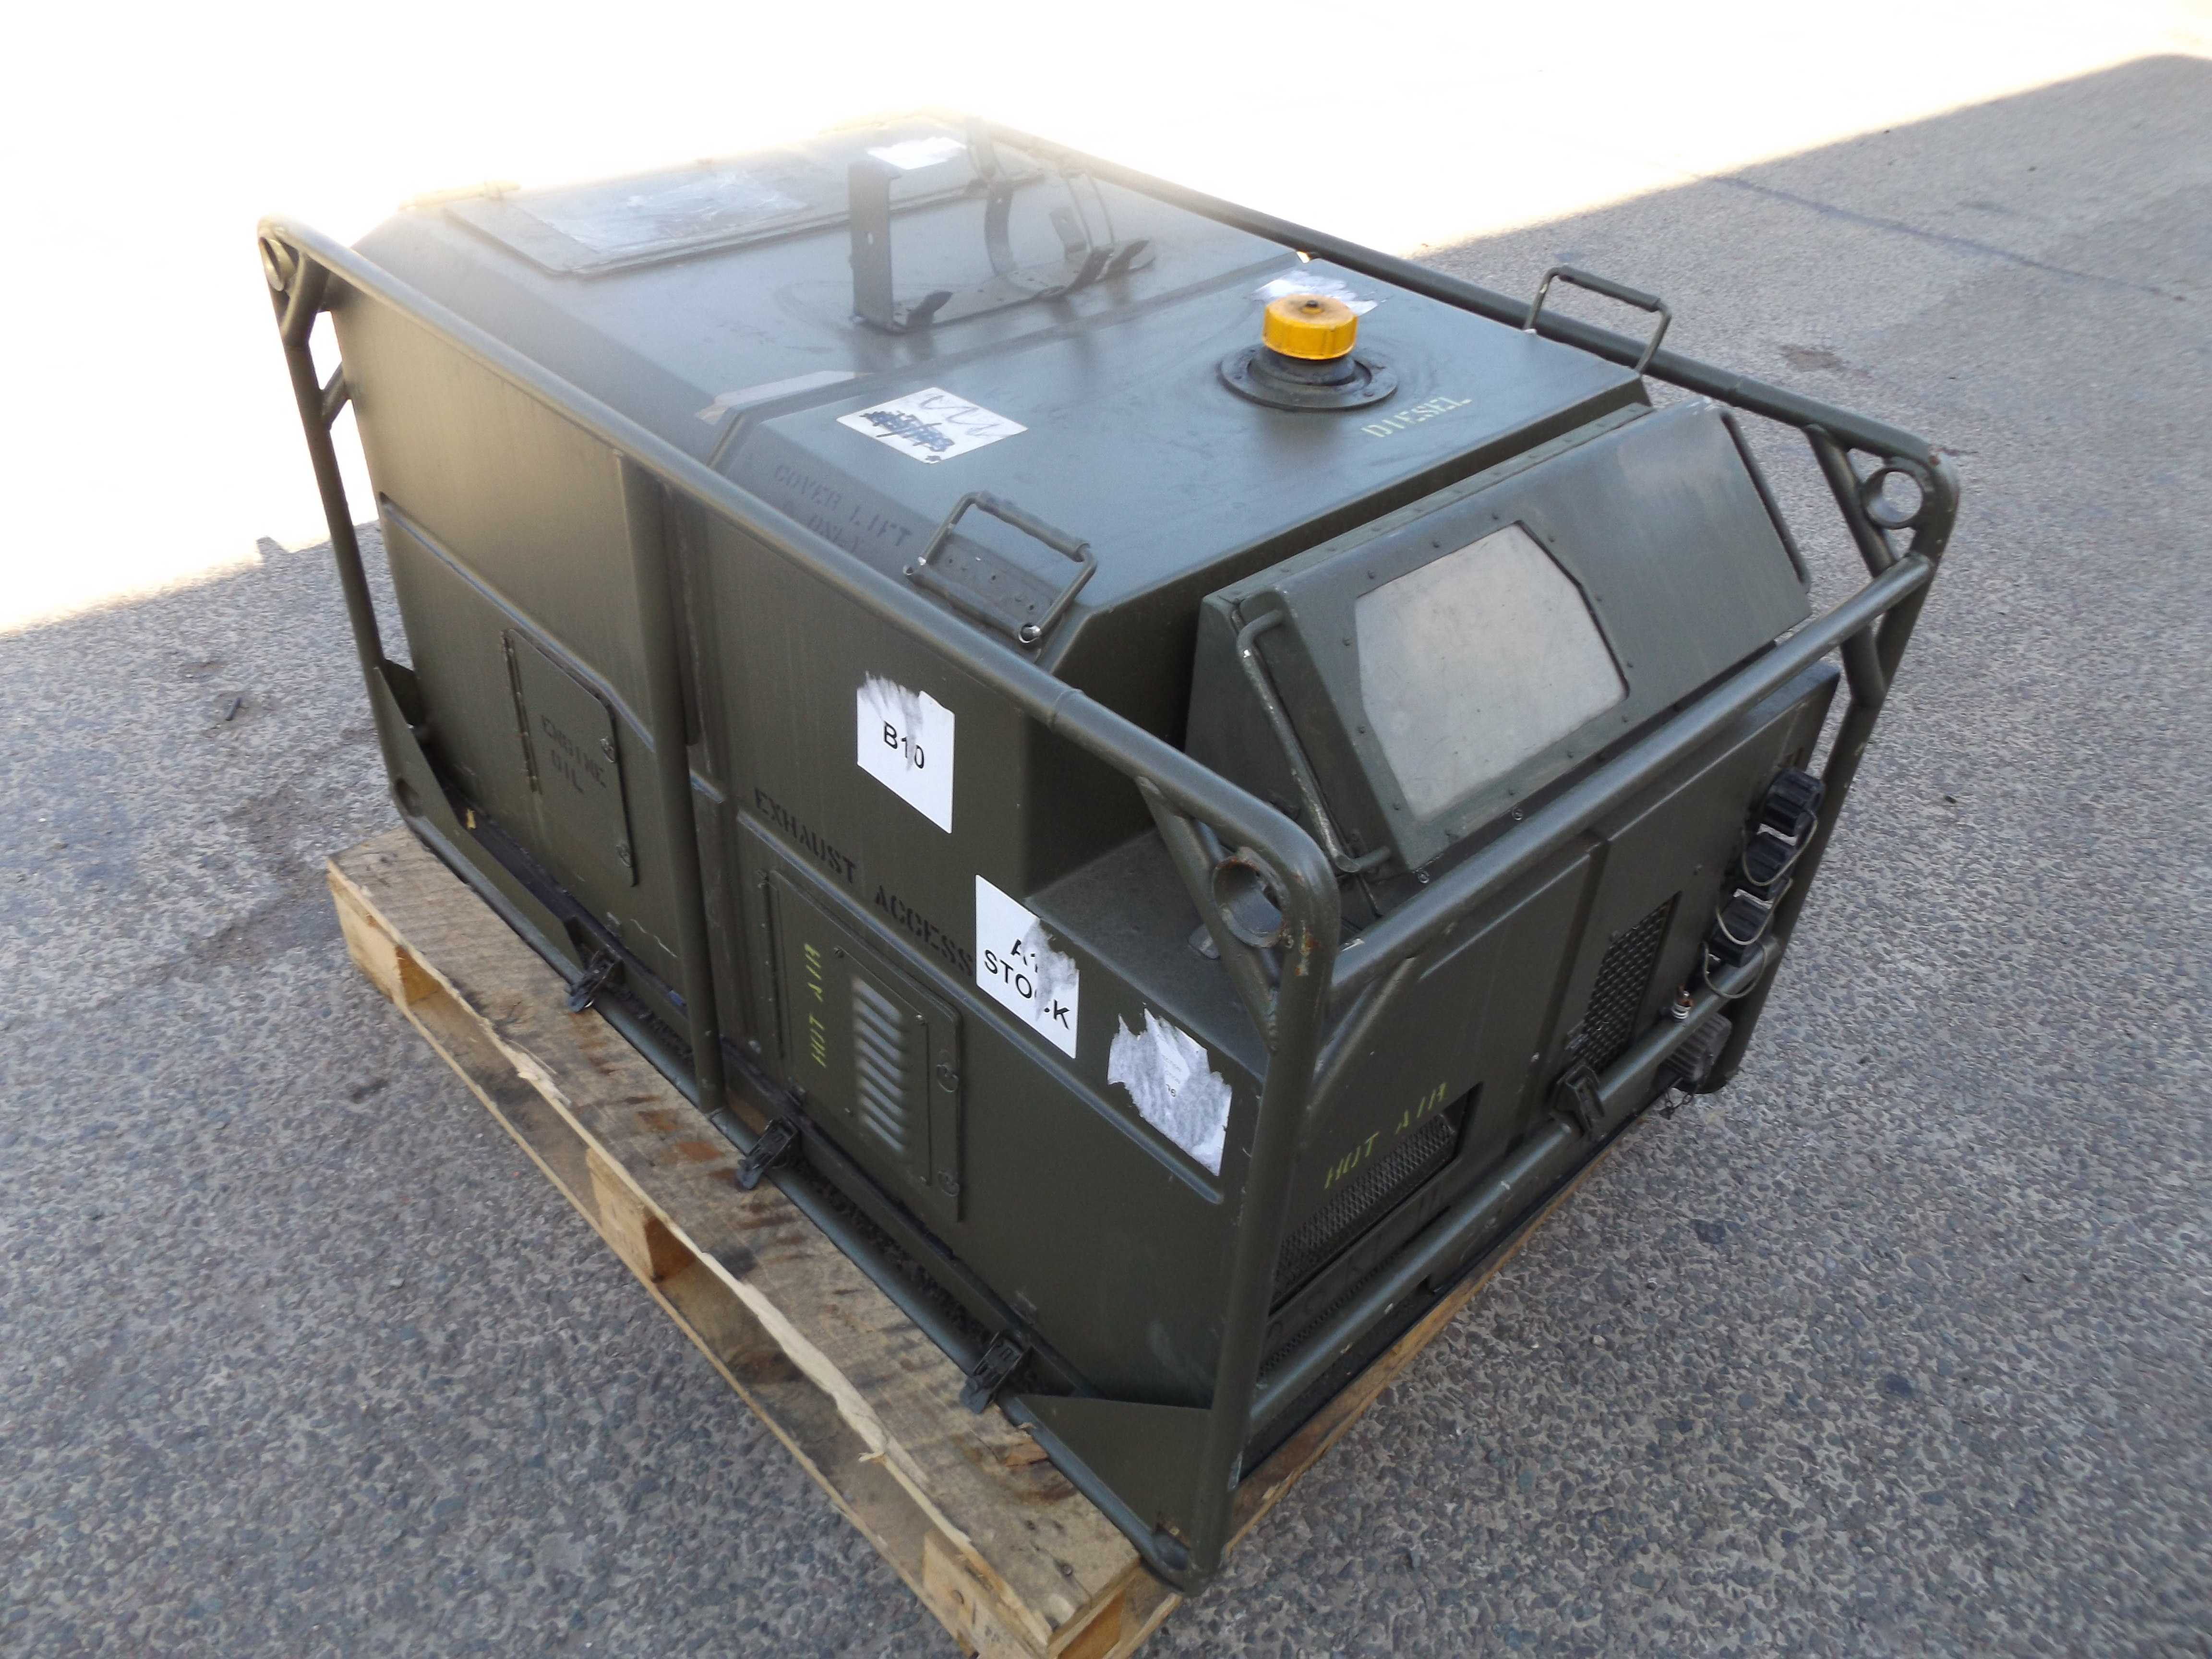 You are bidding on a Lister Petter air log 4169 A 5 6 KVA sel